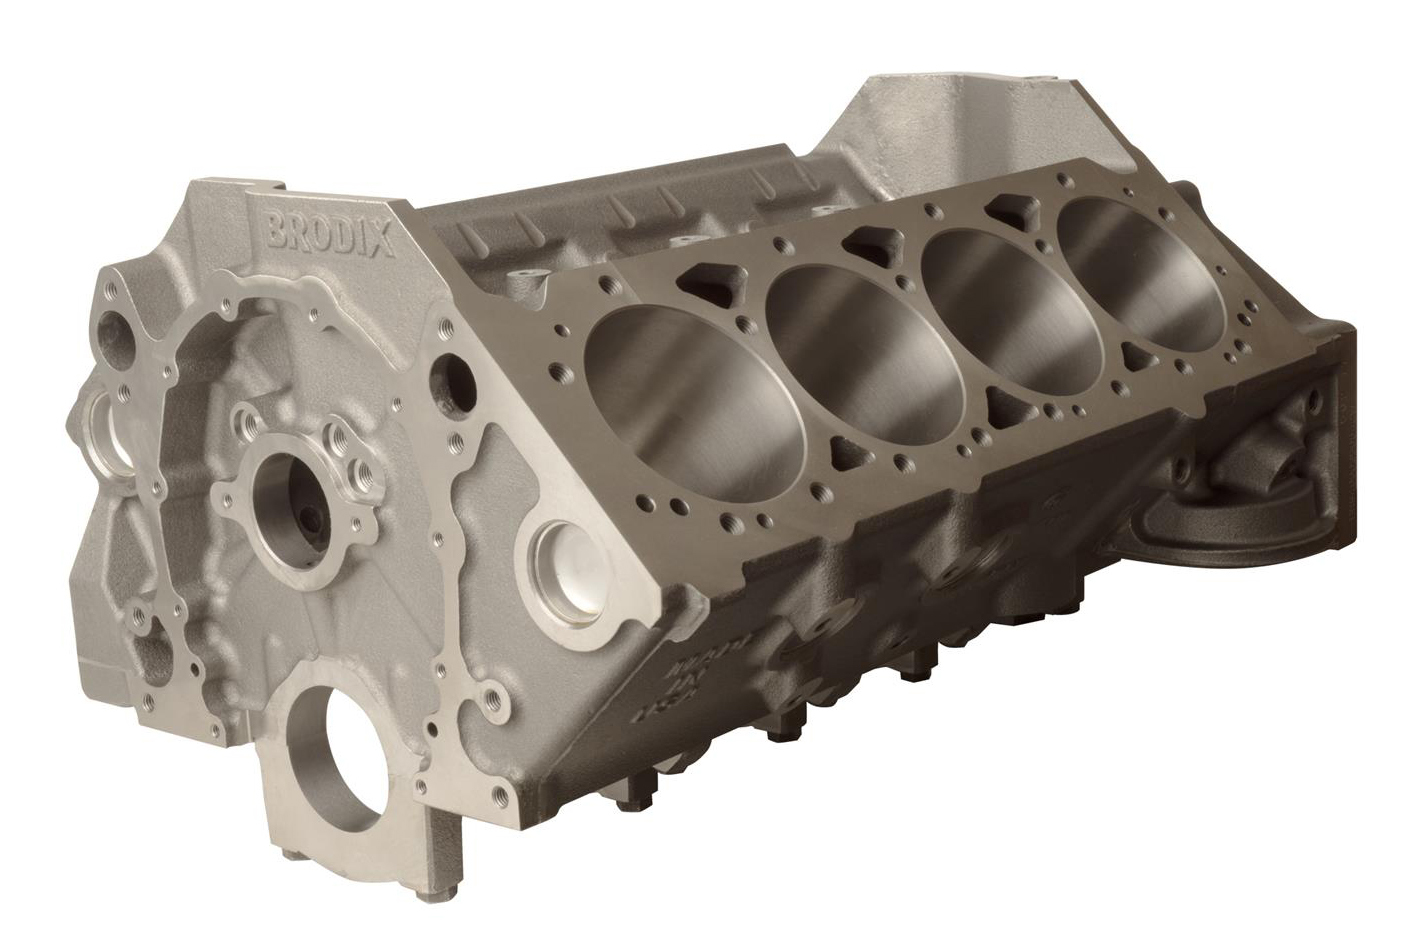 SBC Cast Iron Block 4.000 Bore 350 Mains